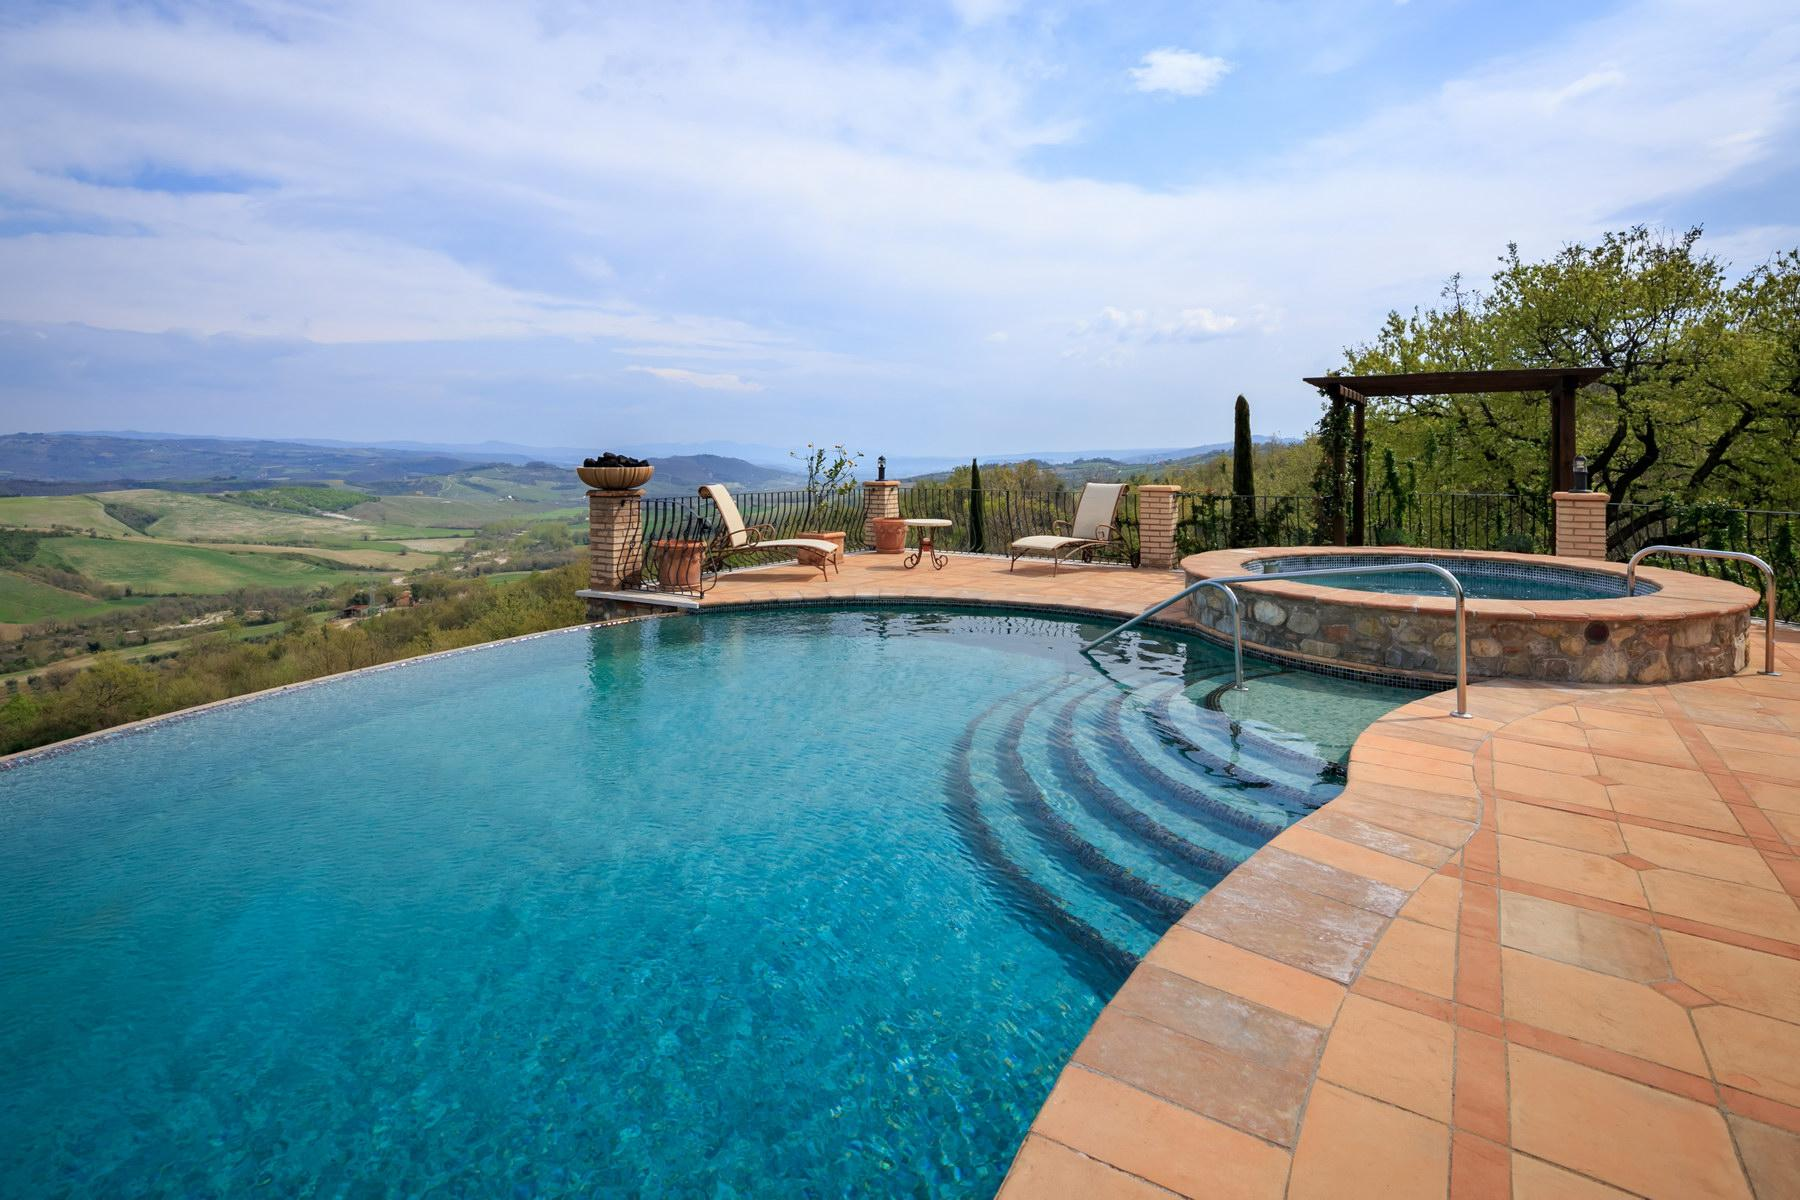 Outstanding property nestled on the umbrian hills - 3